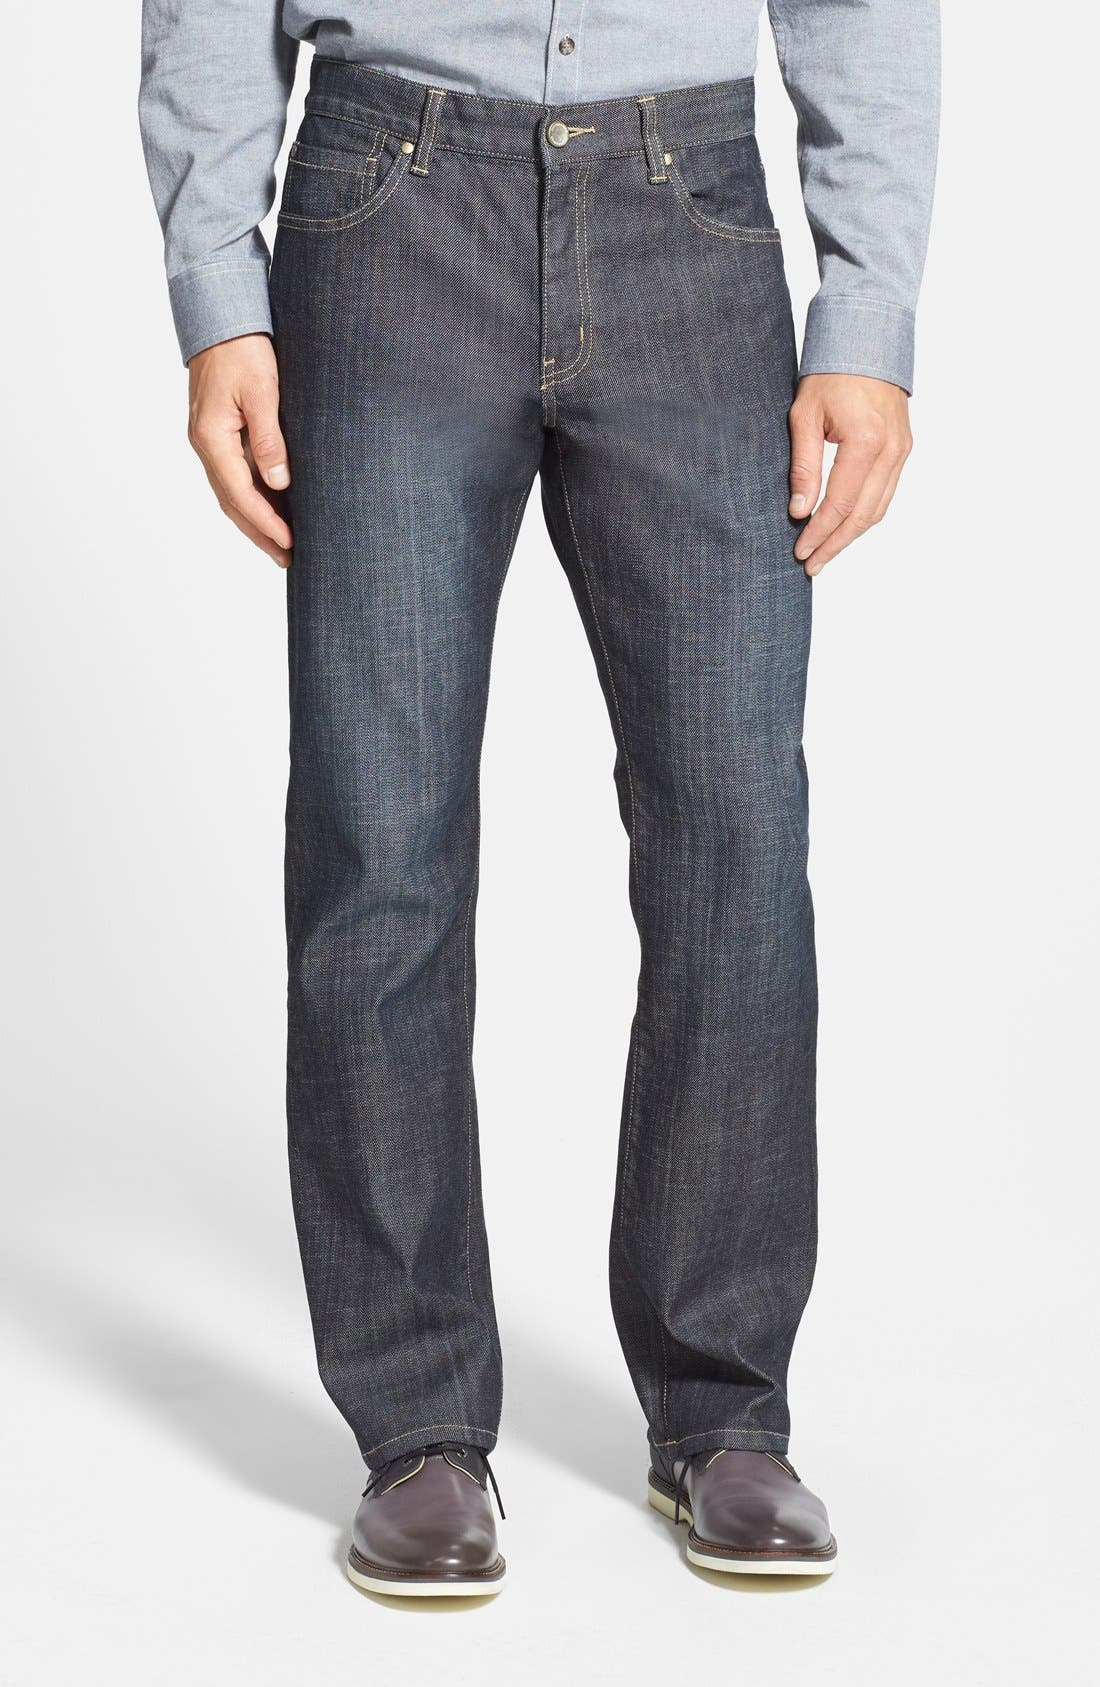 Alternate Image 1 Selected - Cutter & Buck 'West Mercer' Straight Leg Jeans (Midnight)